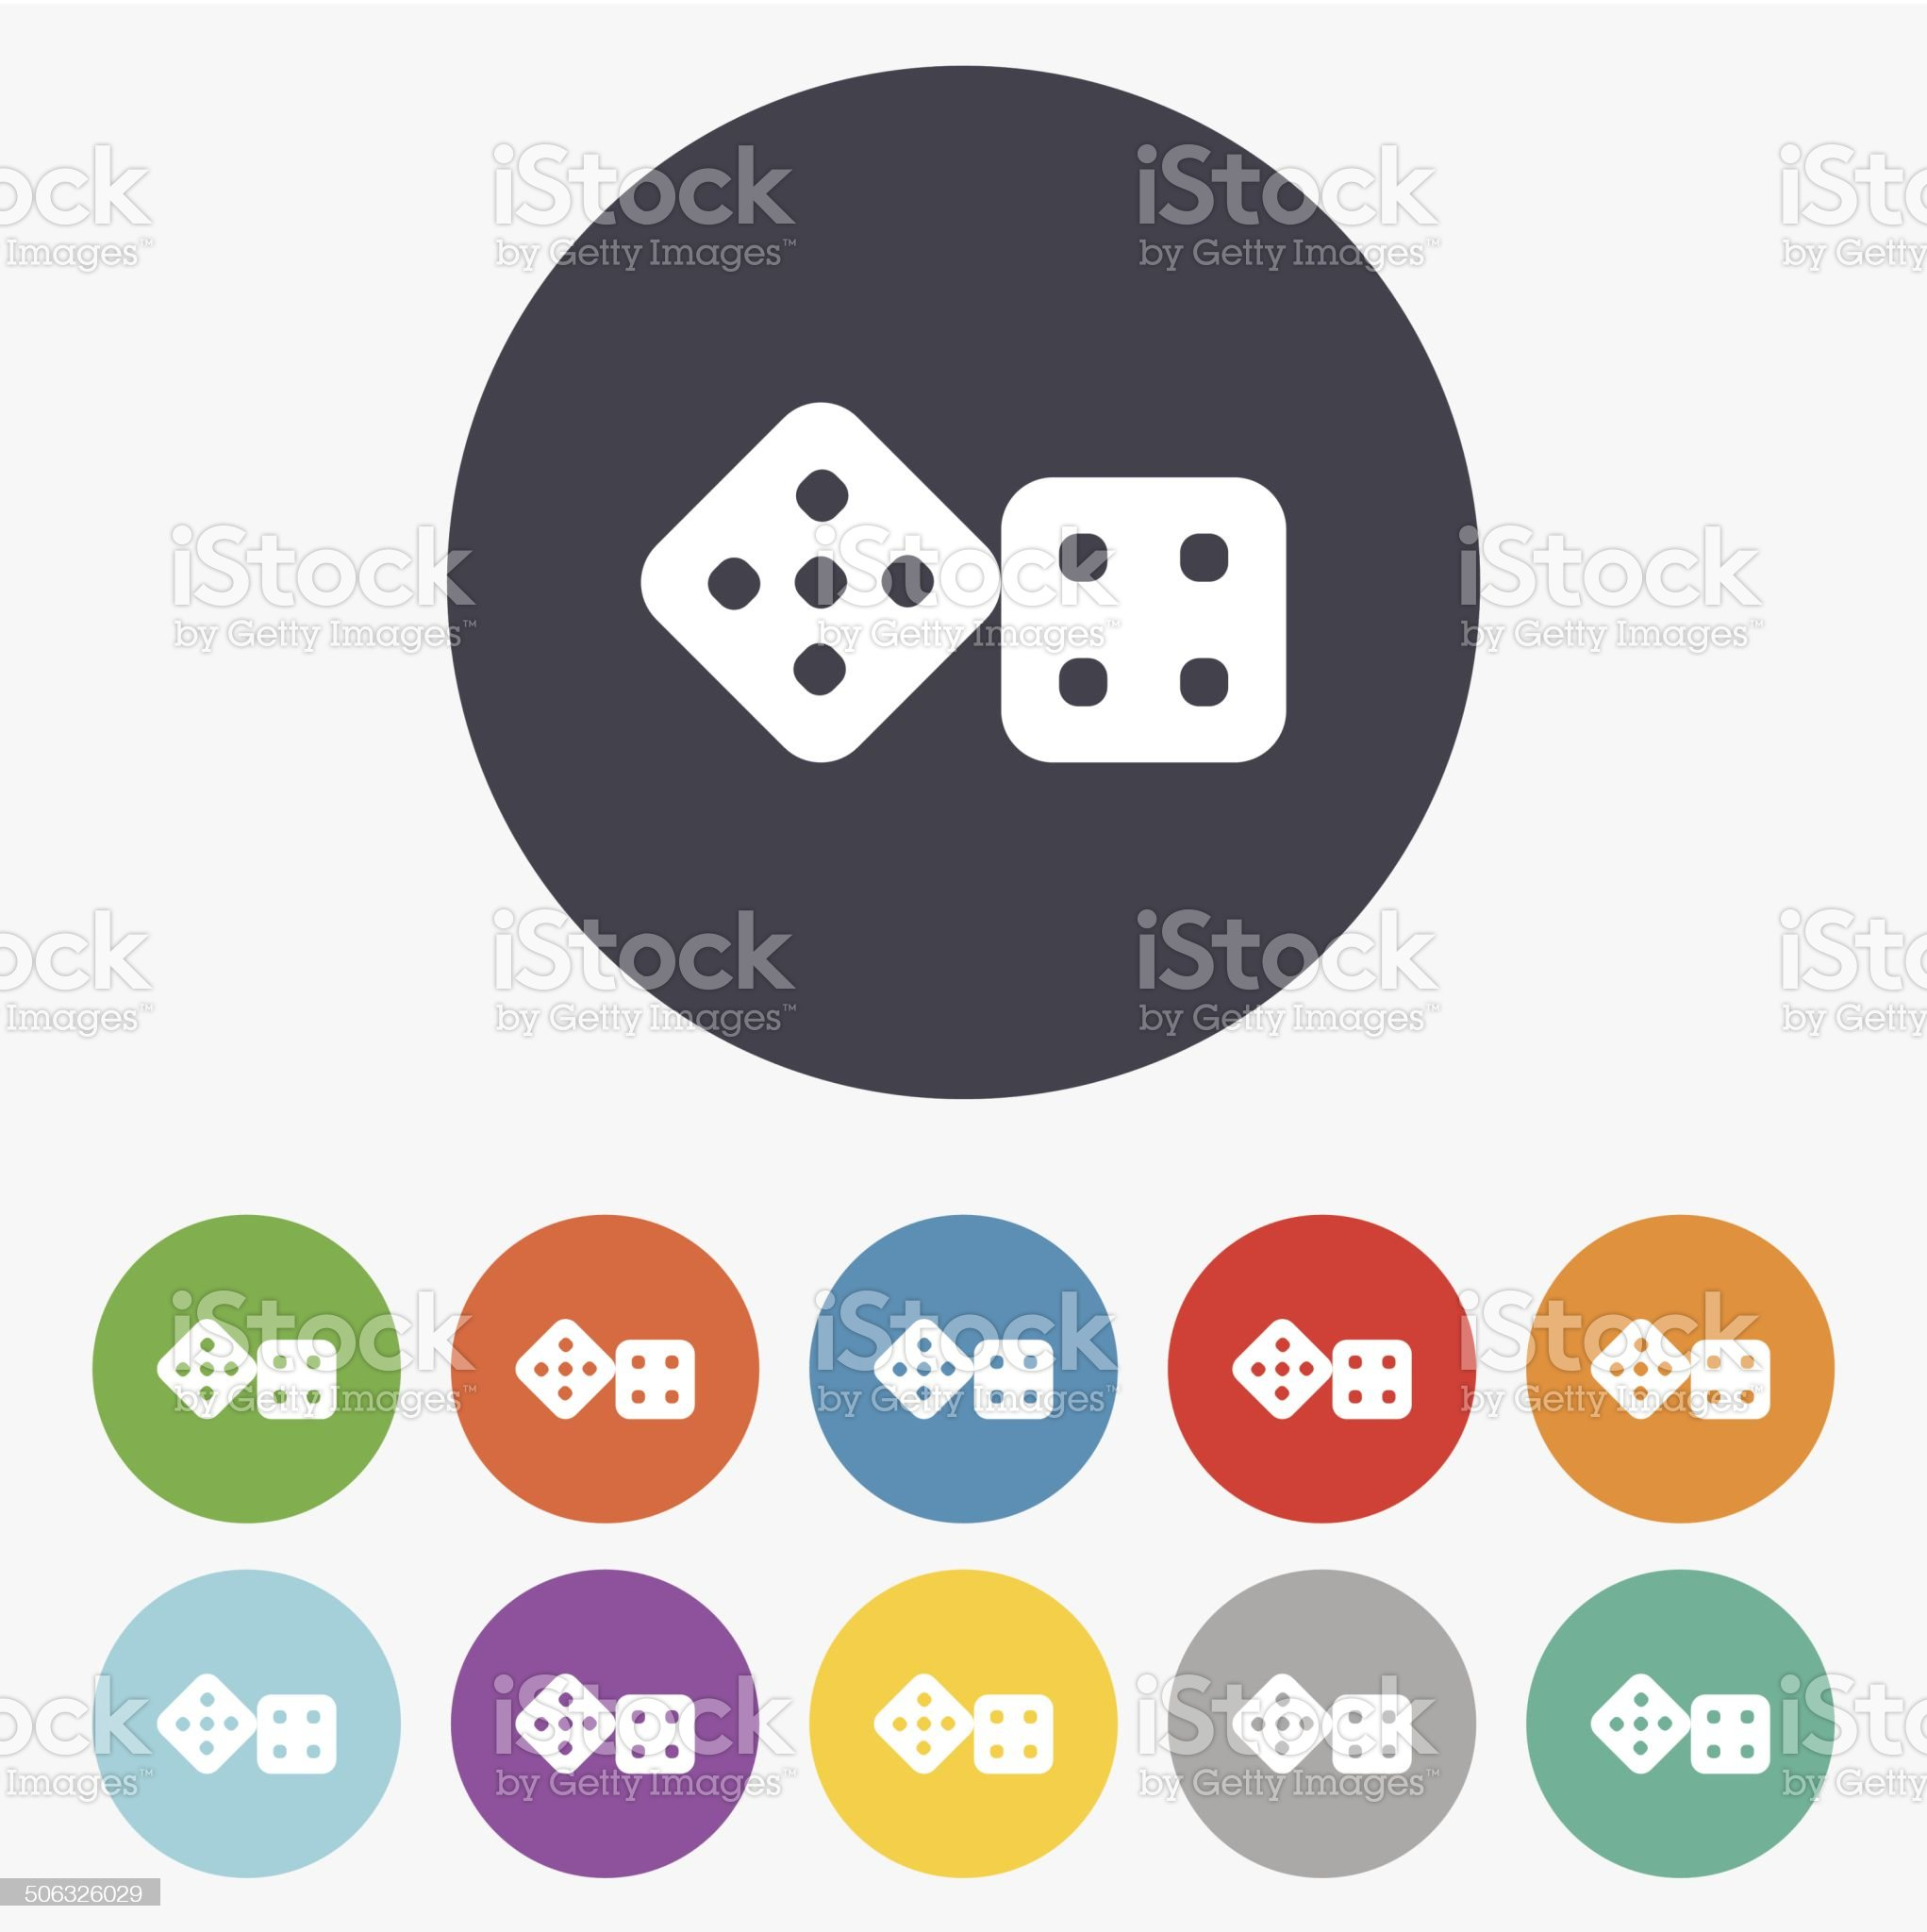 Dices sign icon. Casino game symbol. royalty-free stock vector art